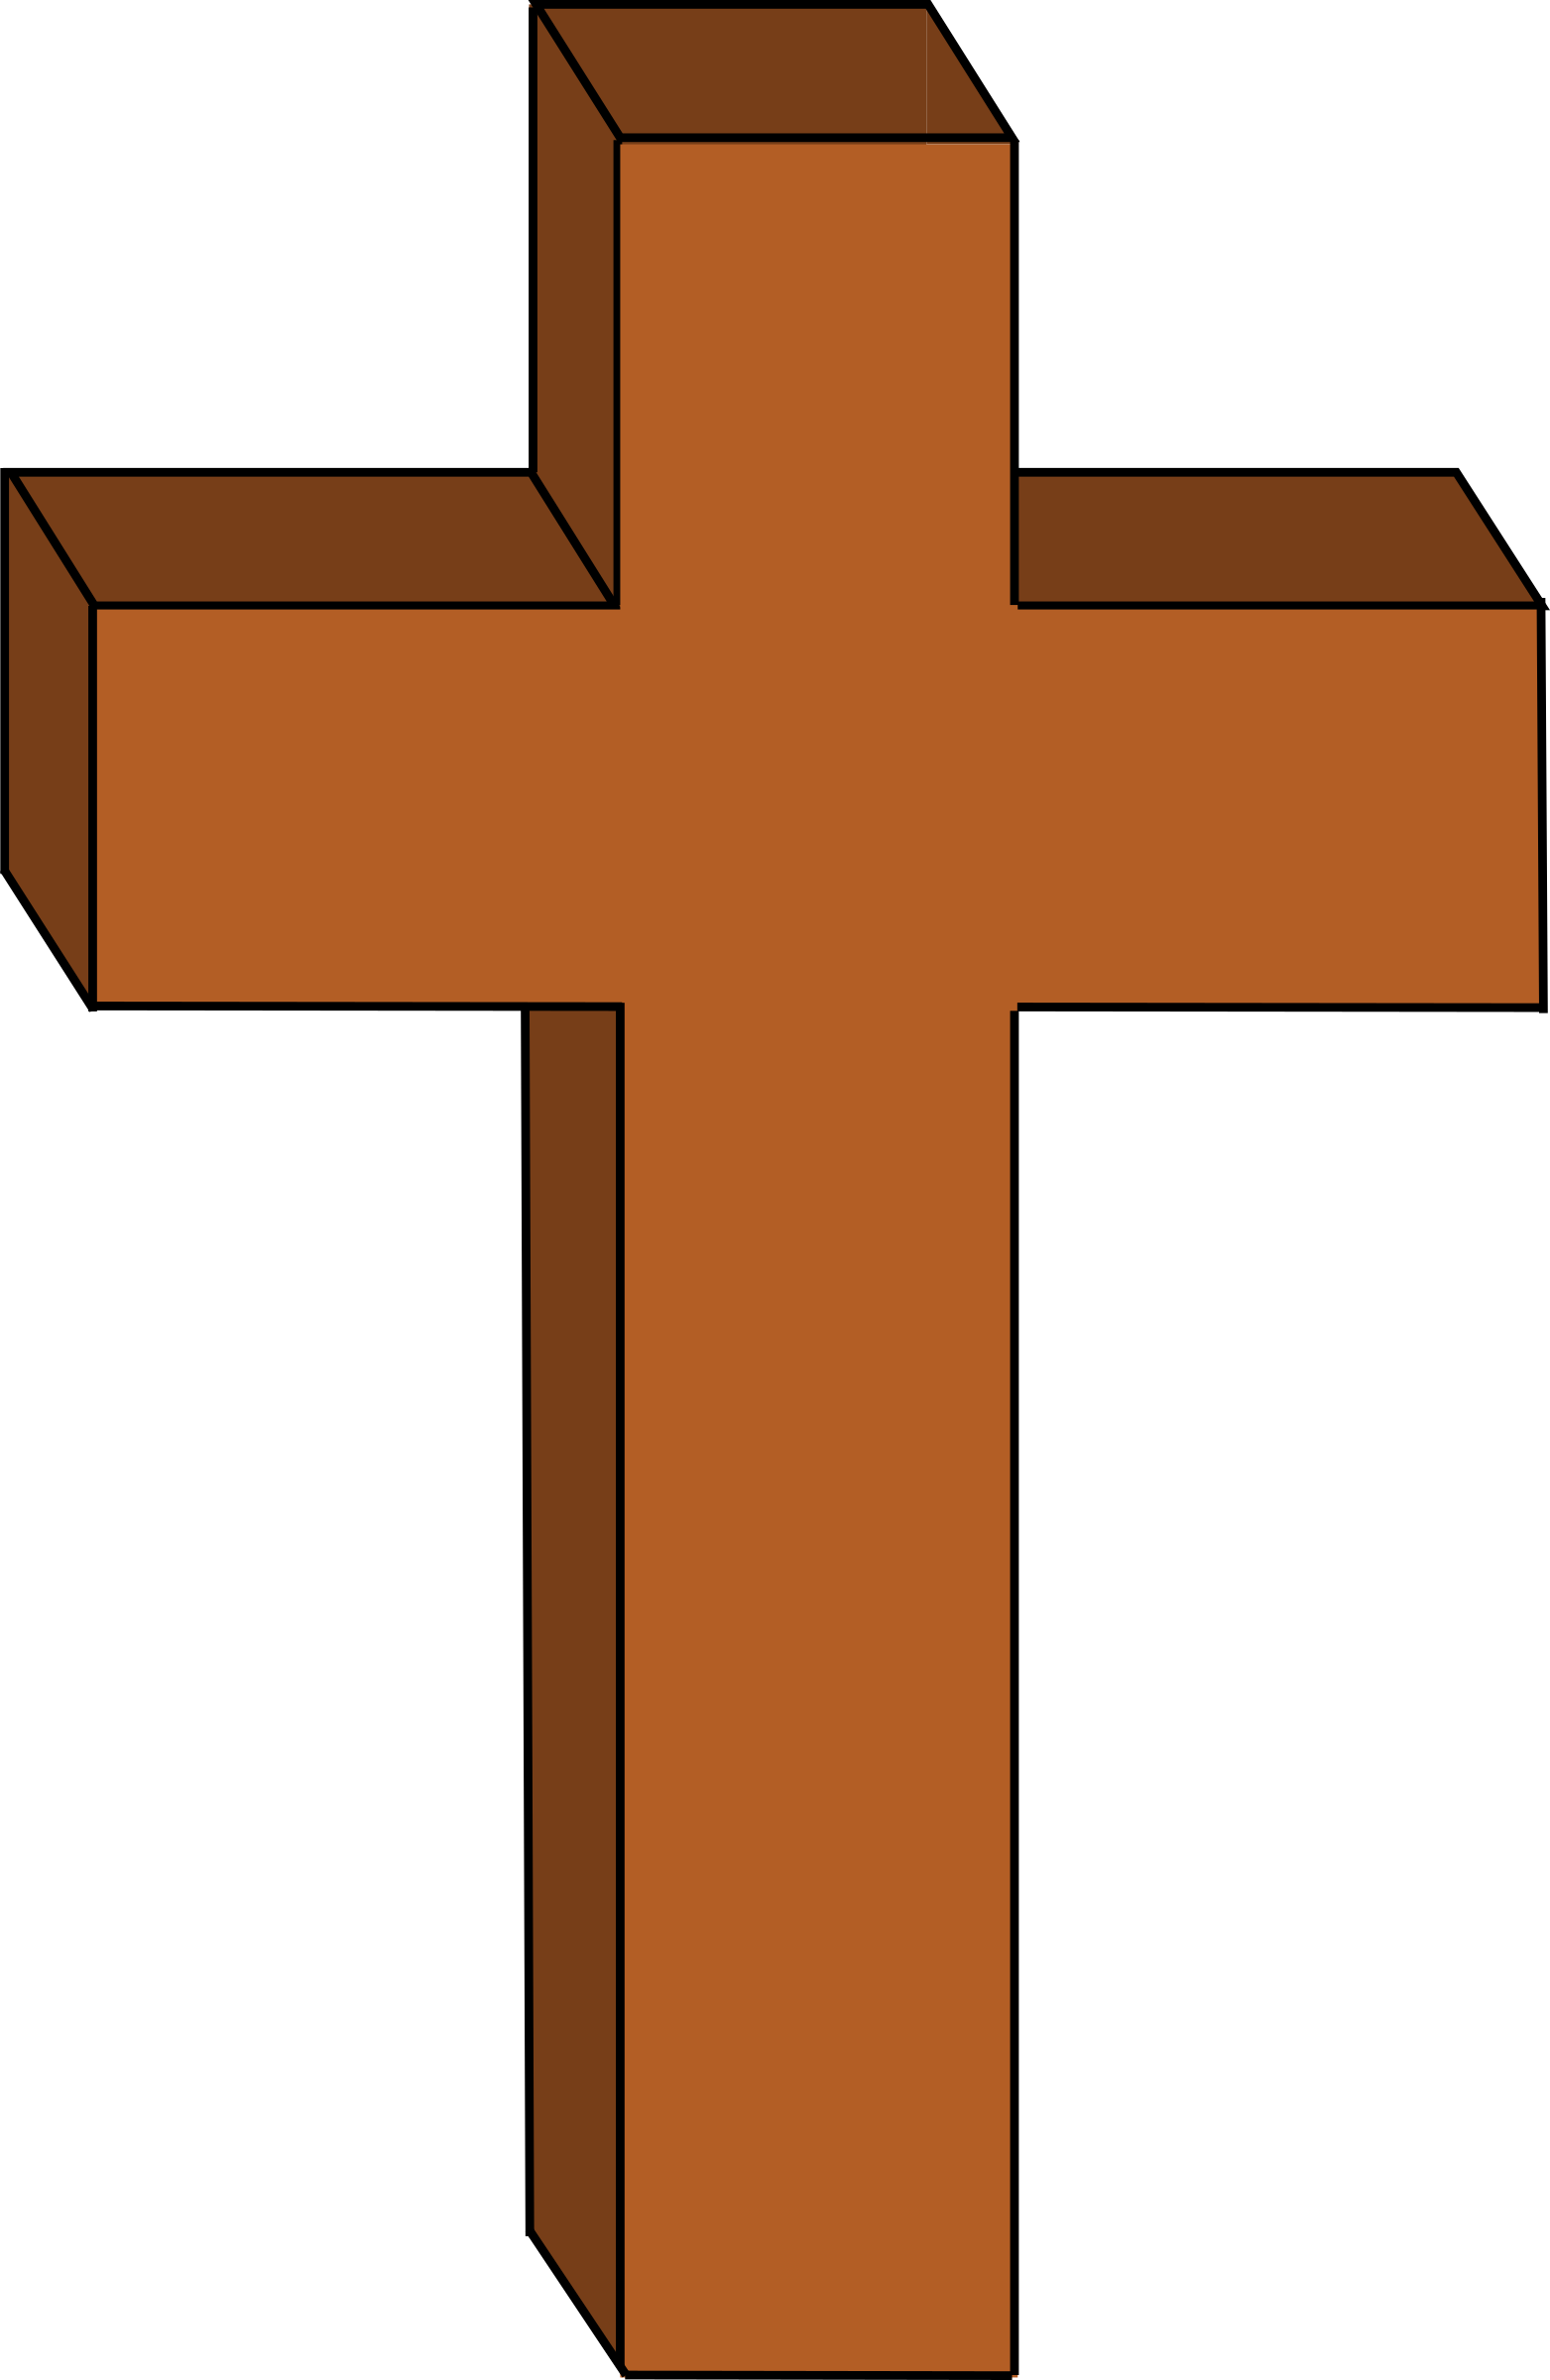 Cross clip art png. Christian images free download